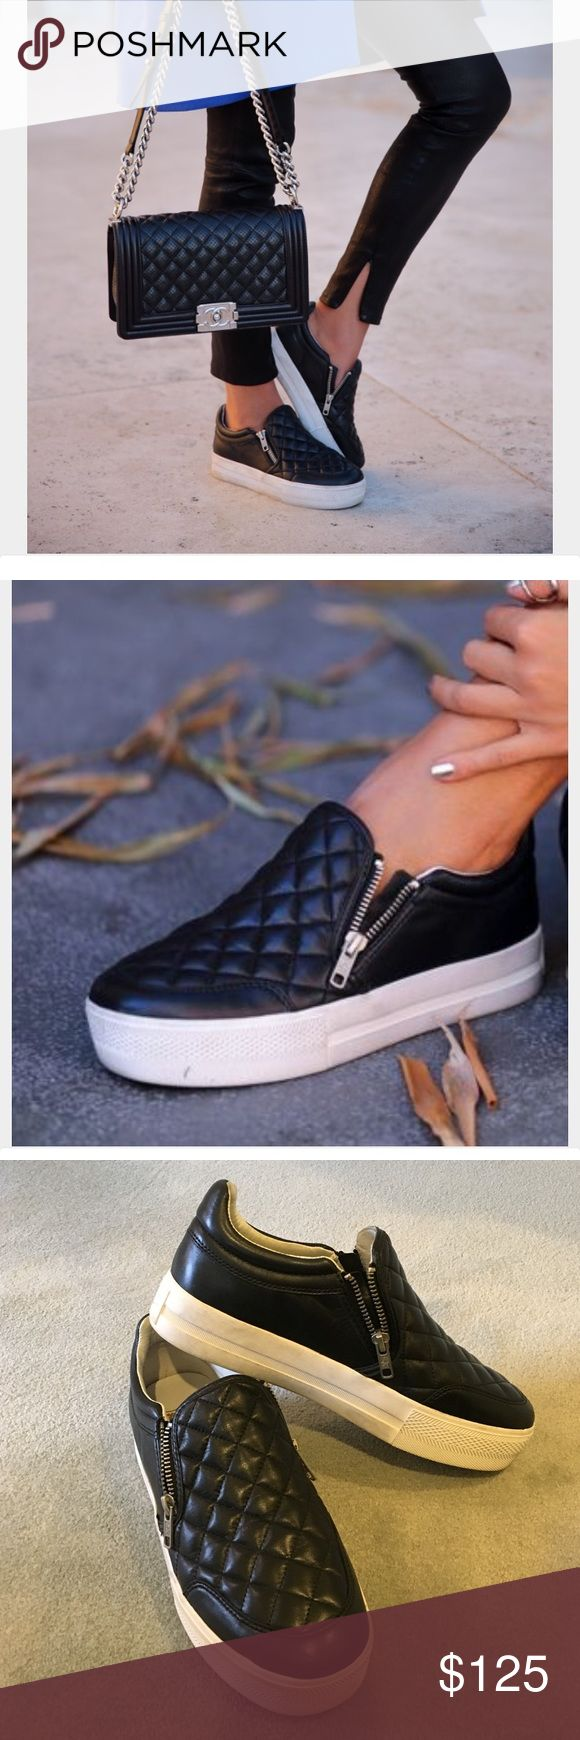 Ash Jodie slip on quilted black sneaker. Very gently worn, beautiful sneakers! Were sold at Neiman Marcus. Full leather upper. Cool black quilted design! Ash Shoes Sneakers